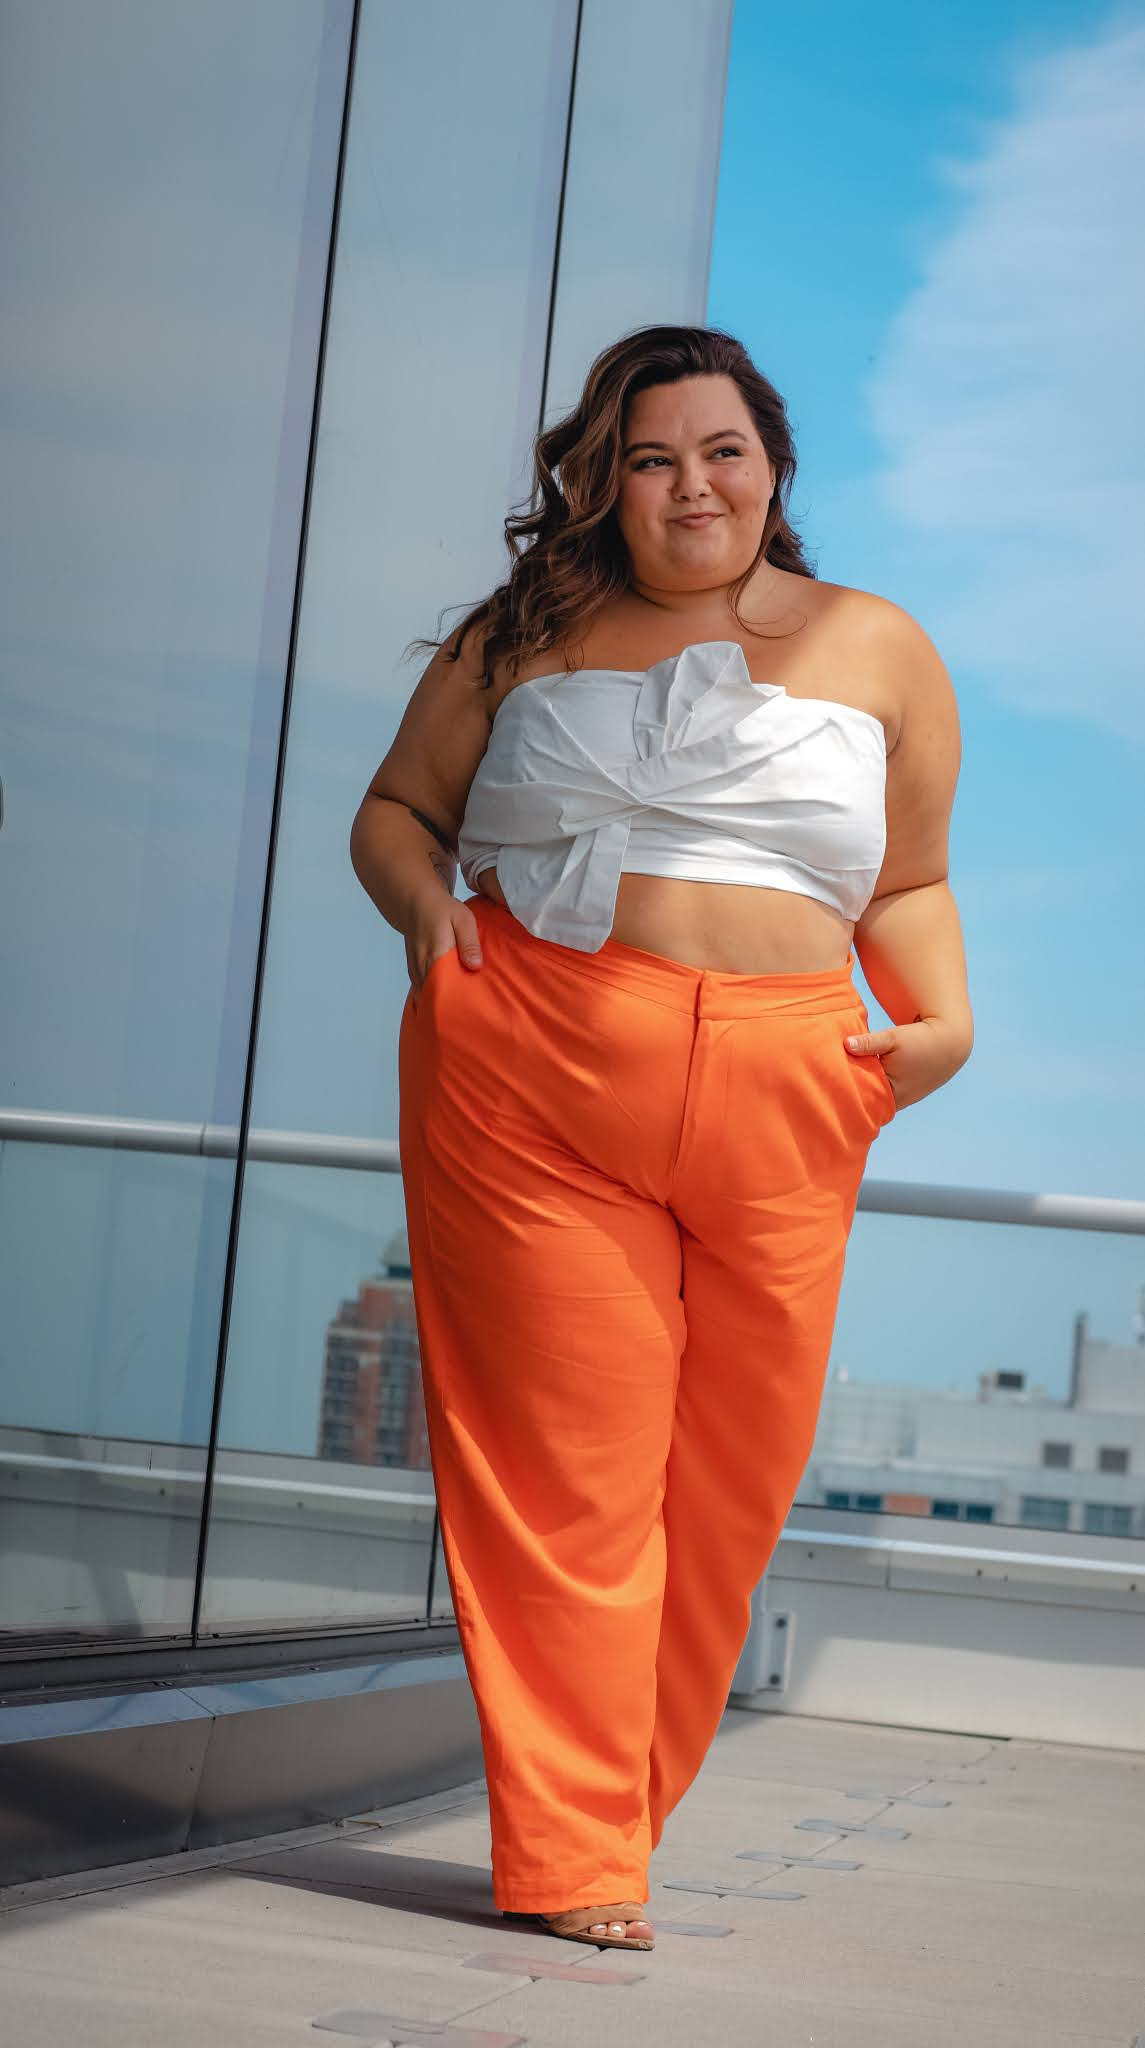 Plus-size and petite blogger and model Natalie in the City reviews the wide-leg pants she's wearing from Eloquii.